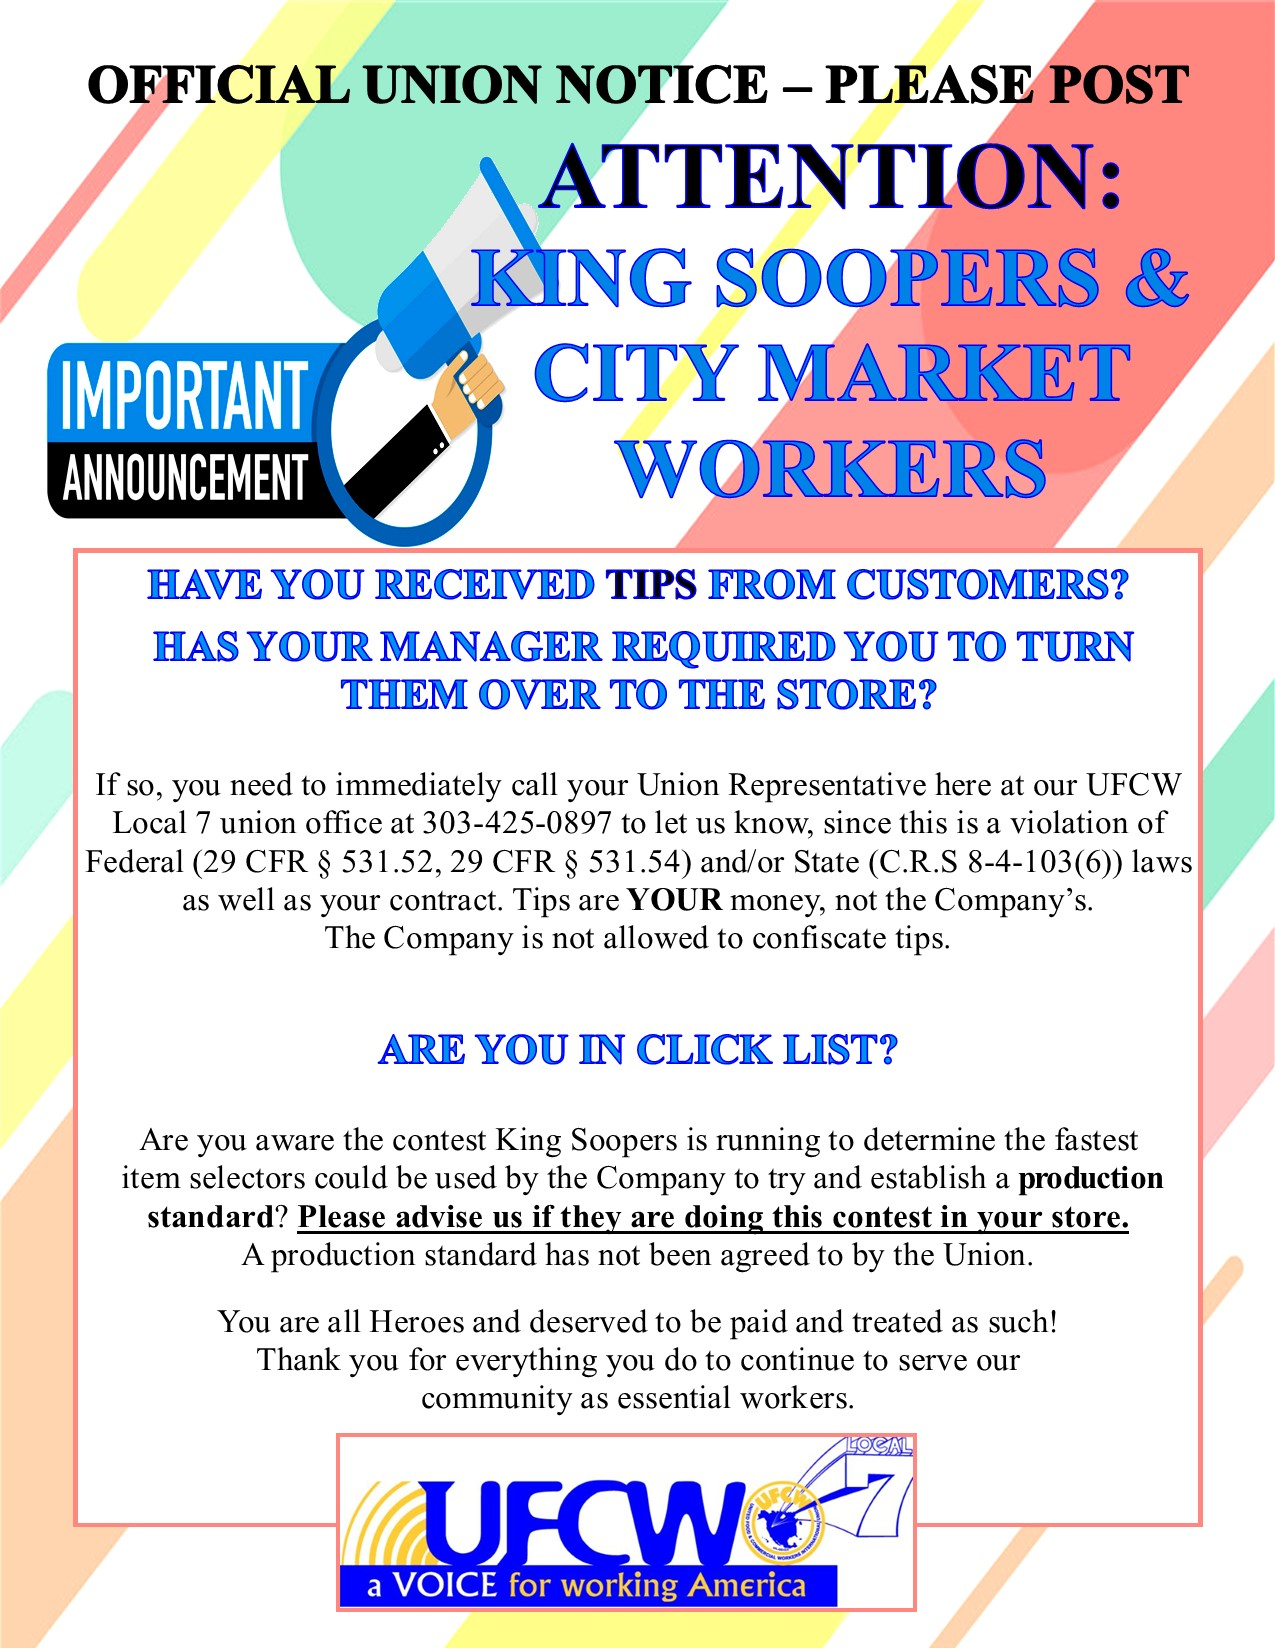 ATTENTION: King Soopers & City Market Workers